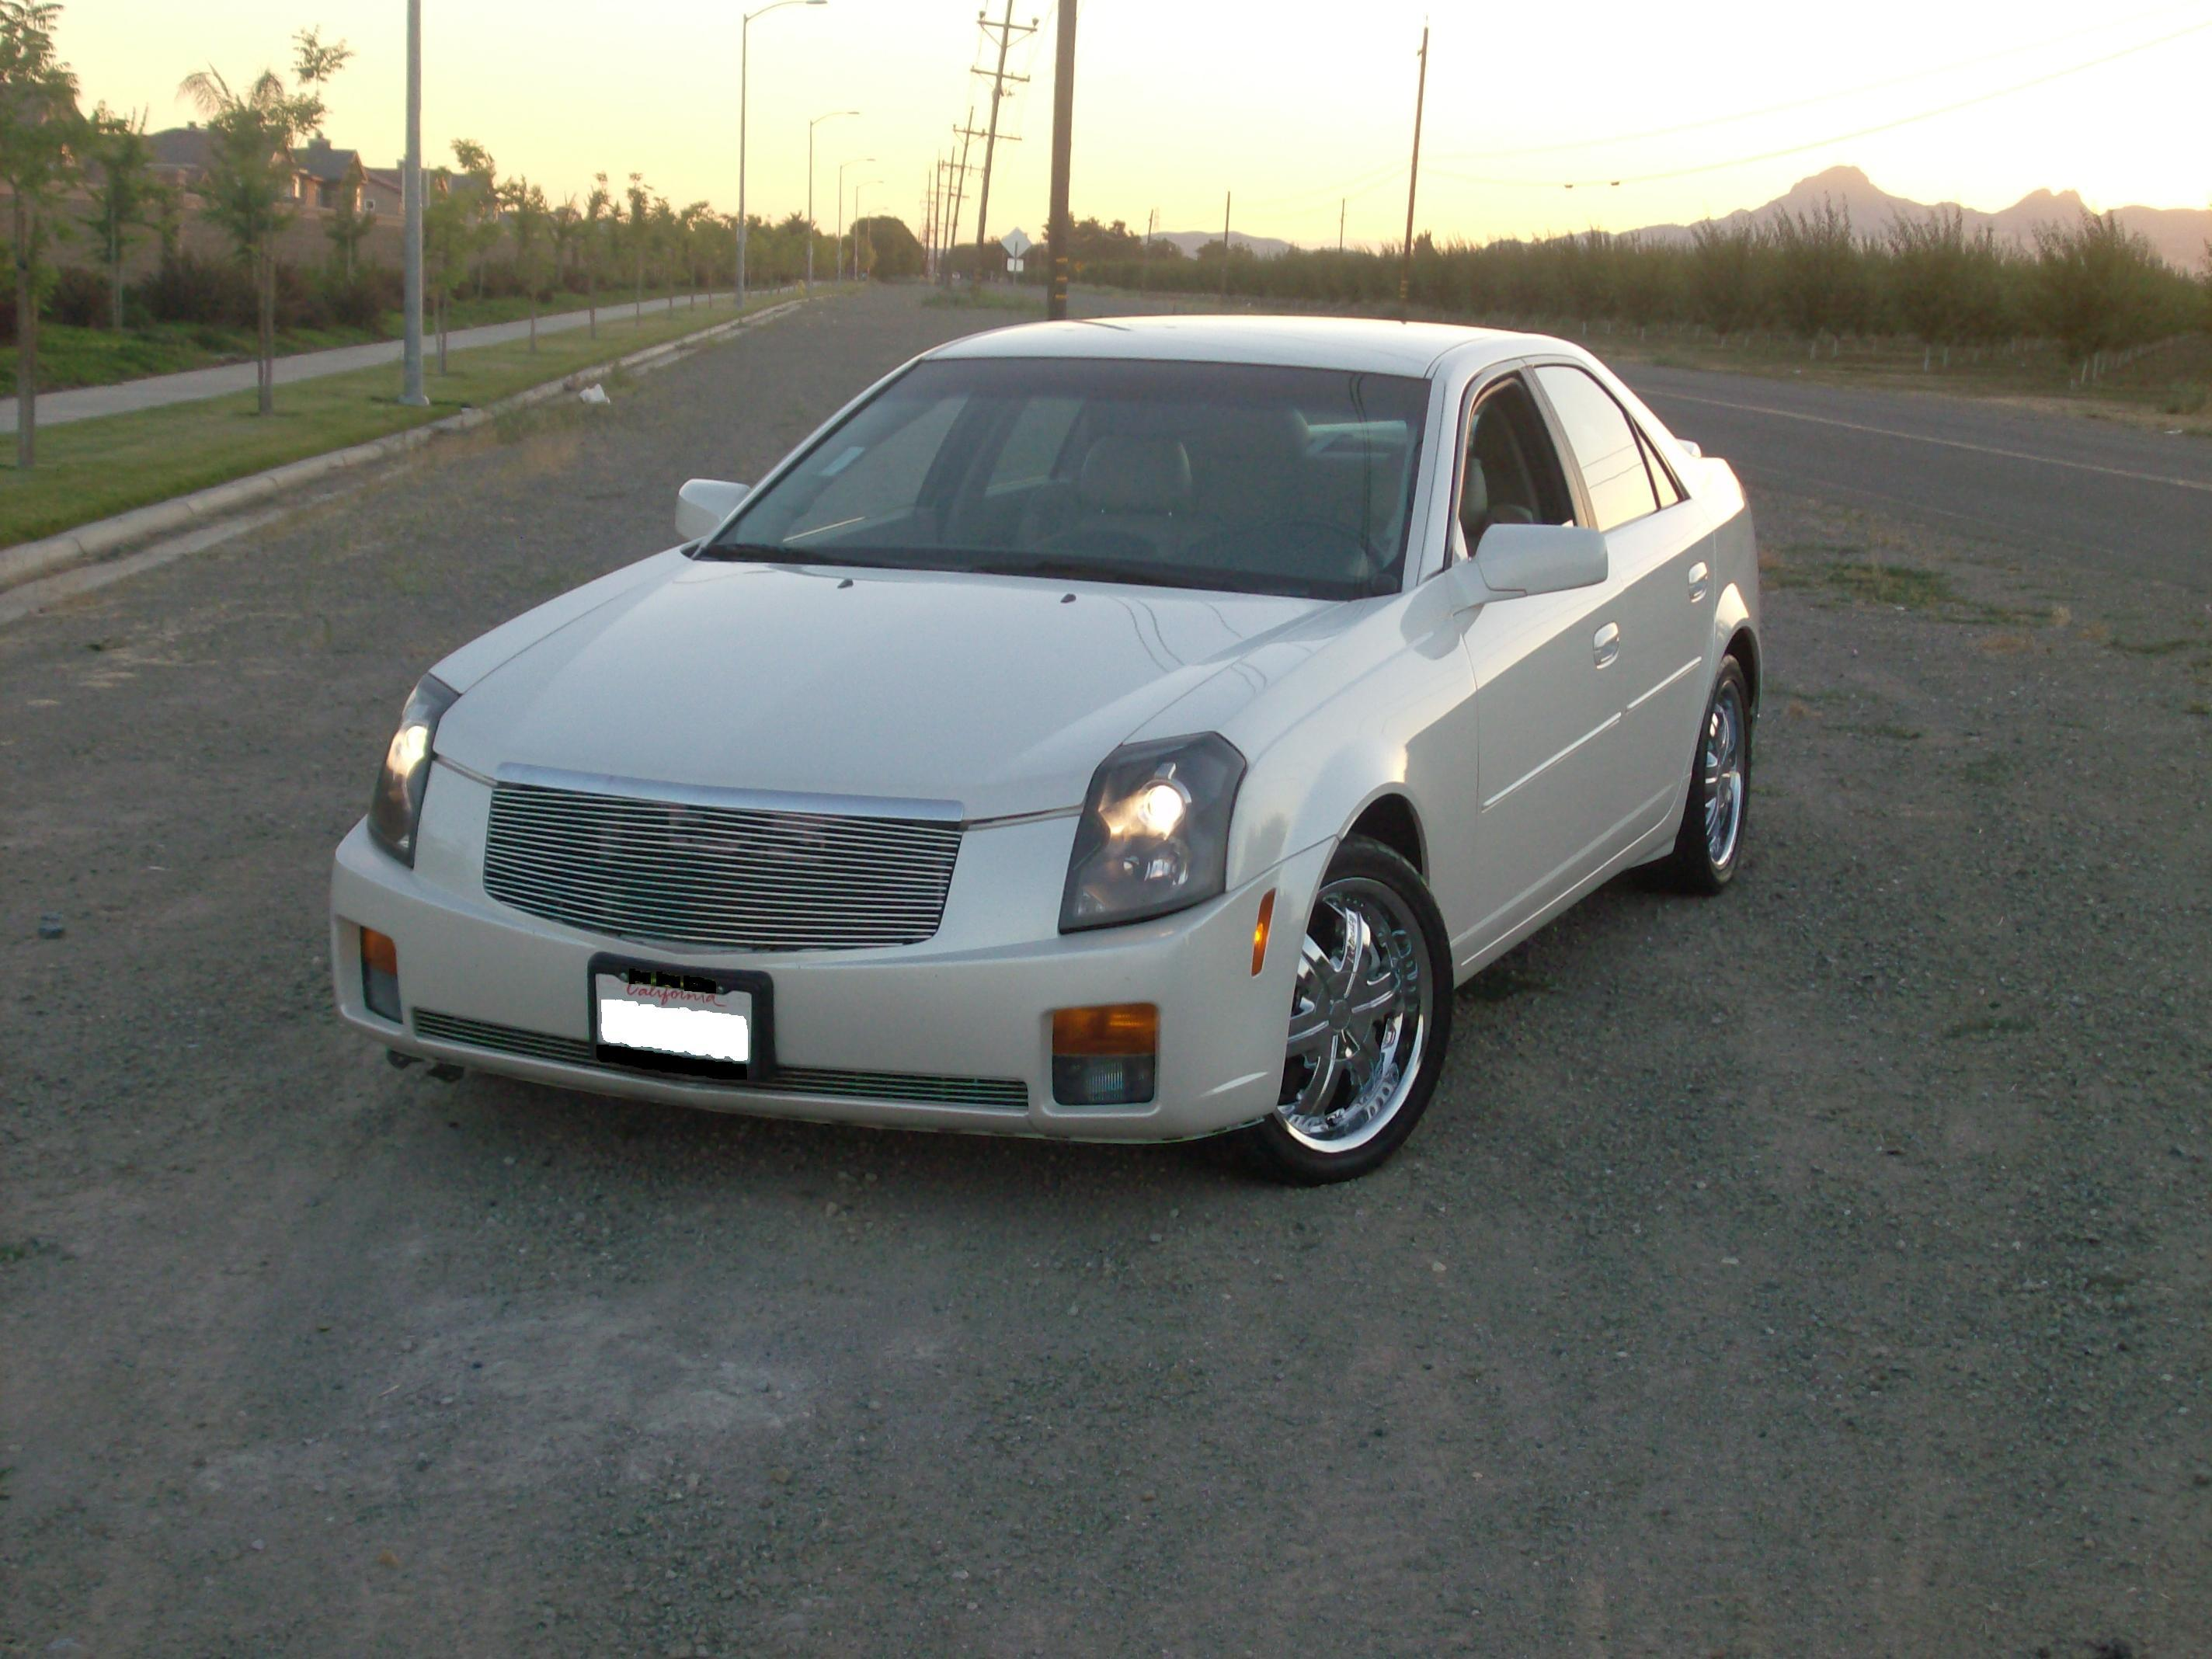 j nardo 2003 cadillac cts specs photos modification info. Black Bedroom Furniture Sets. Home Design Ideas